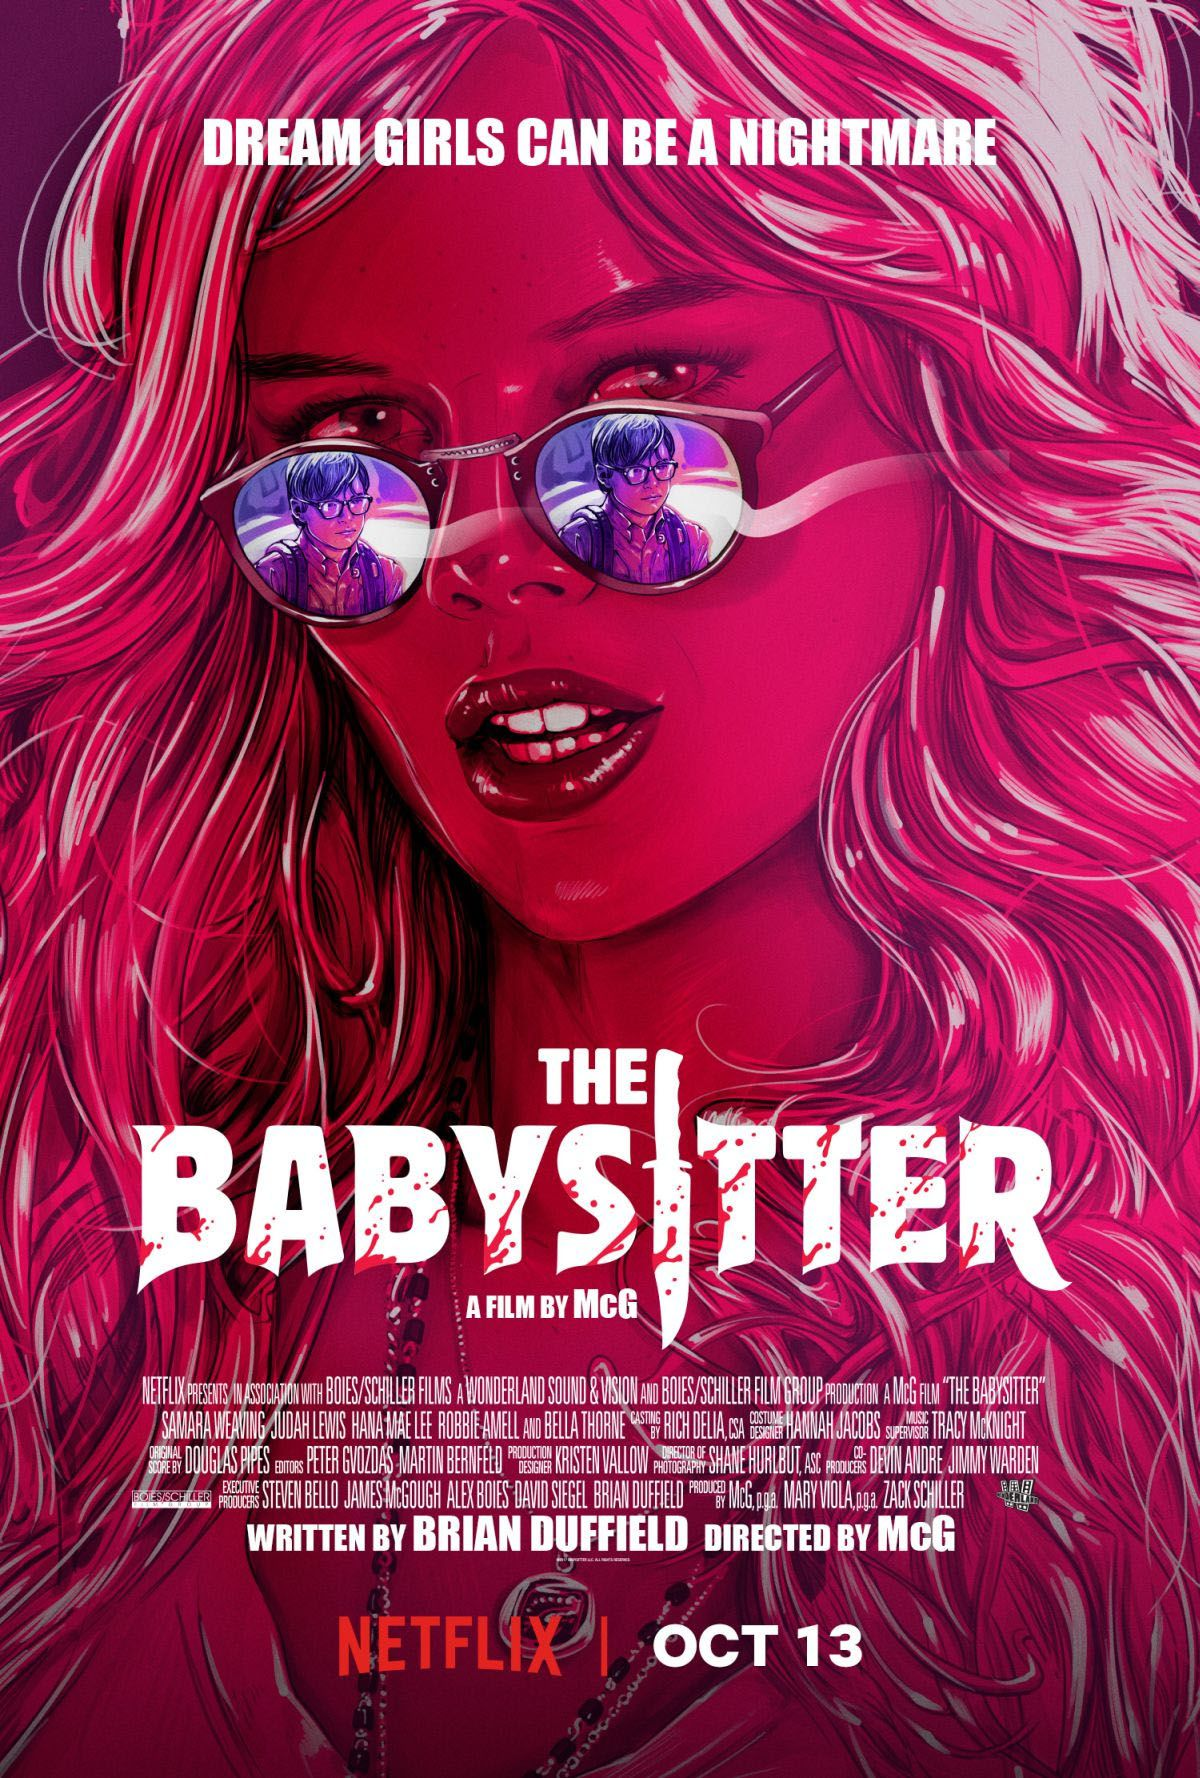 The Babysitter ... dream girls can be a nightmare - Samara Weaving - Judah Lewis - Hana Mae Lee - Robbie Amell - Bella Thorne - Netflix horror film poster